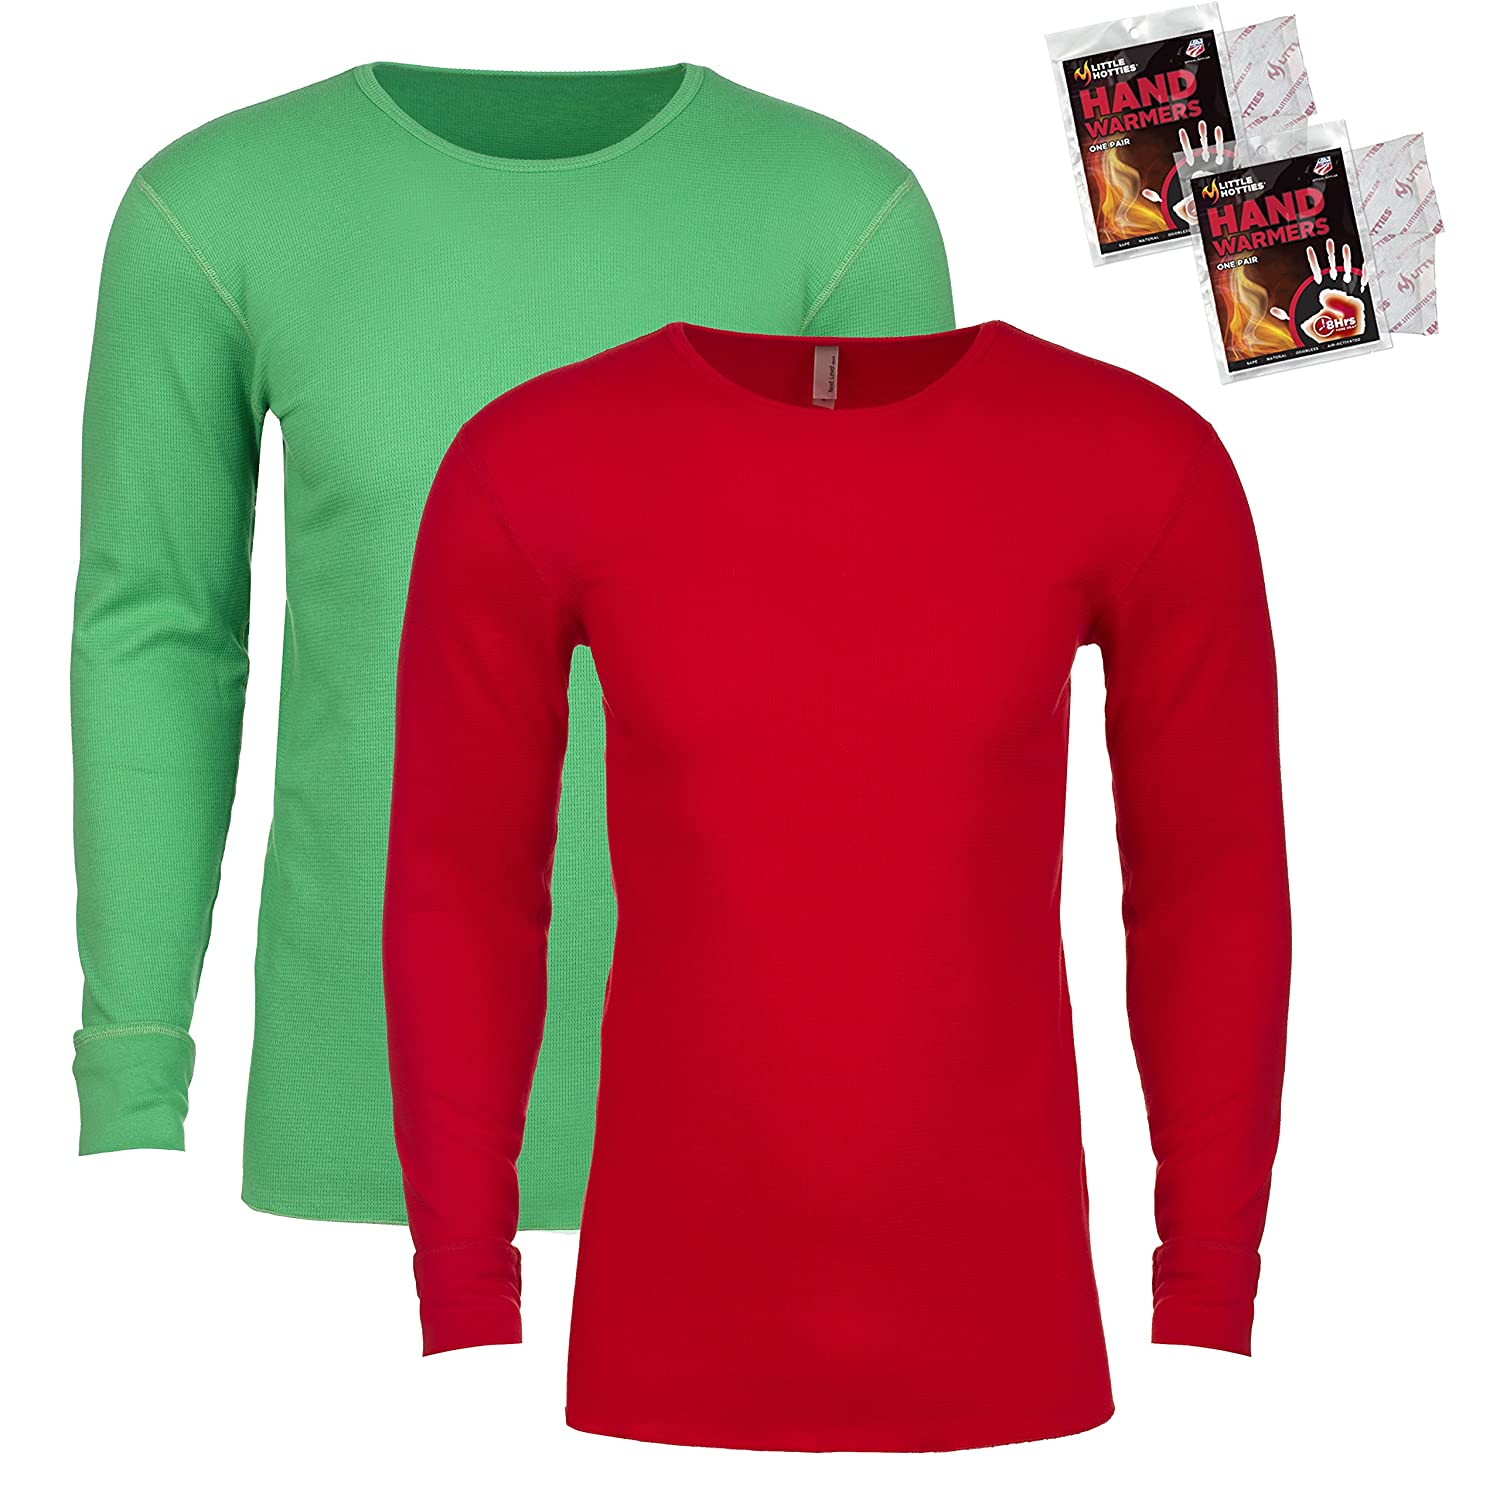 Next Level Men's Long Sleeve Thermal Shirt (Pack of 2)